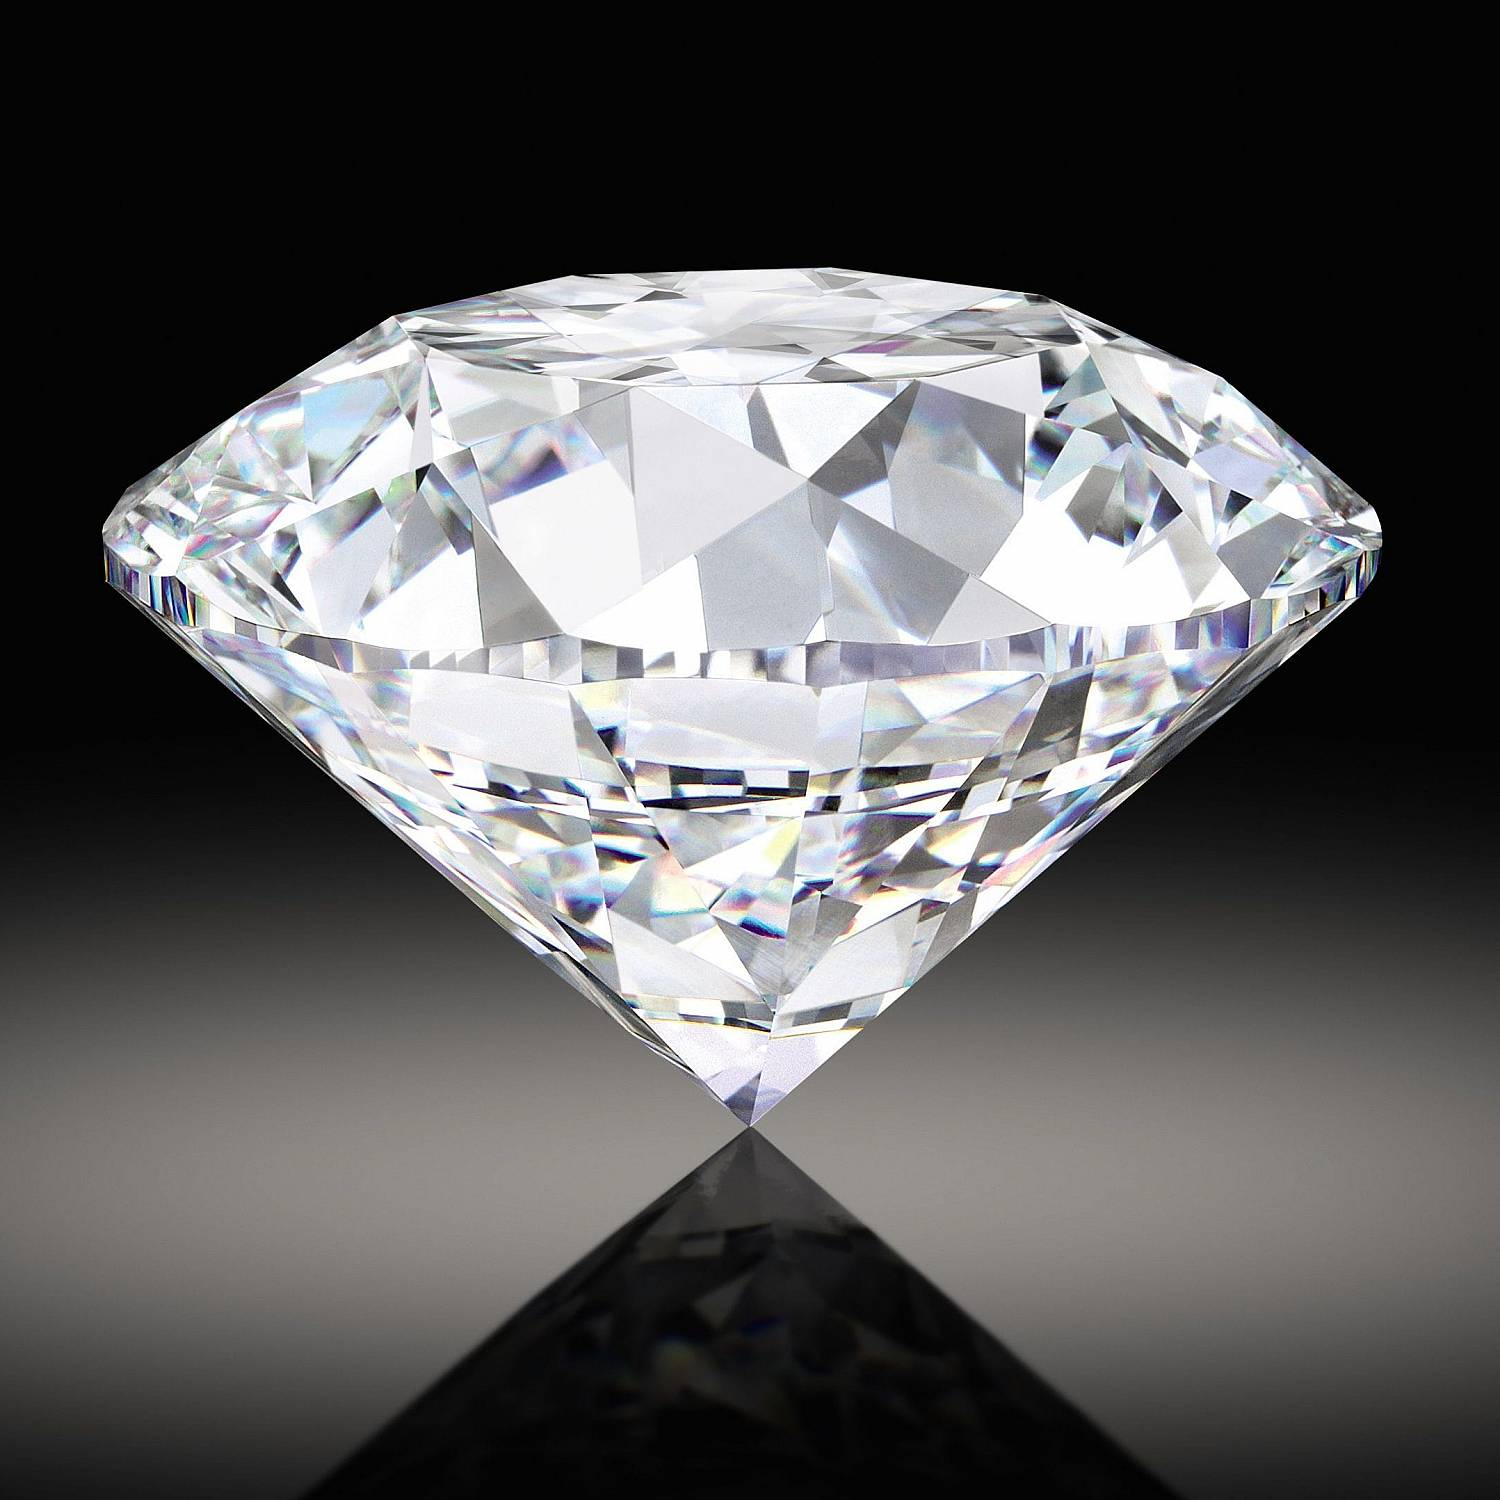 world's largest, rarest and most valuable D-Flawless round white diamond 2